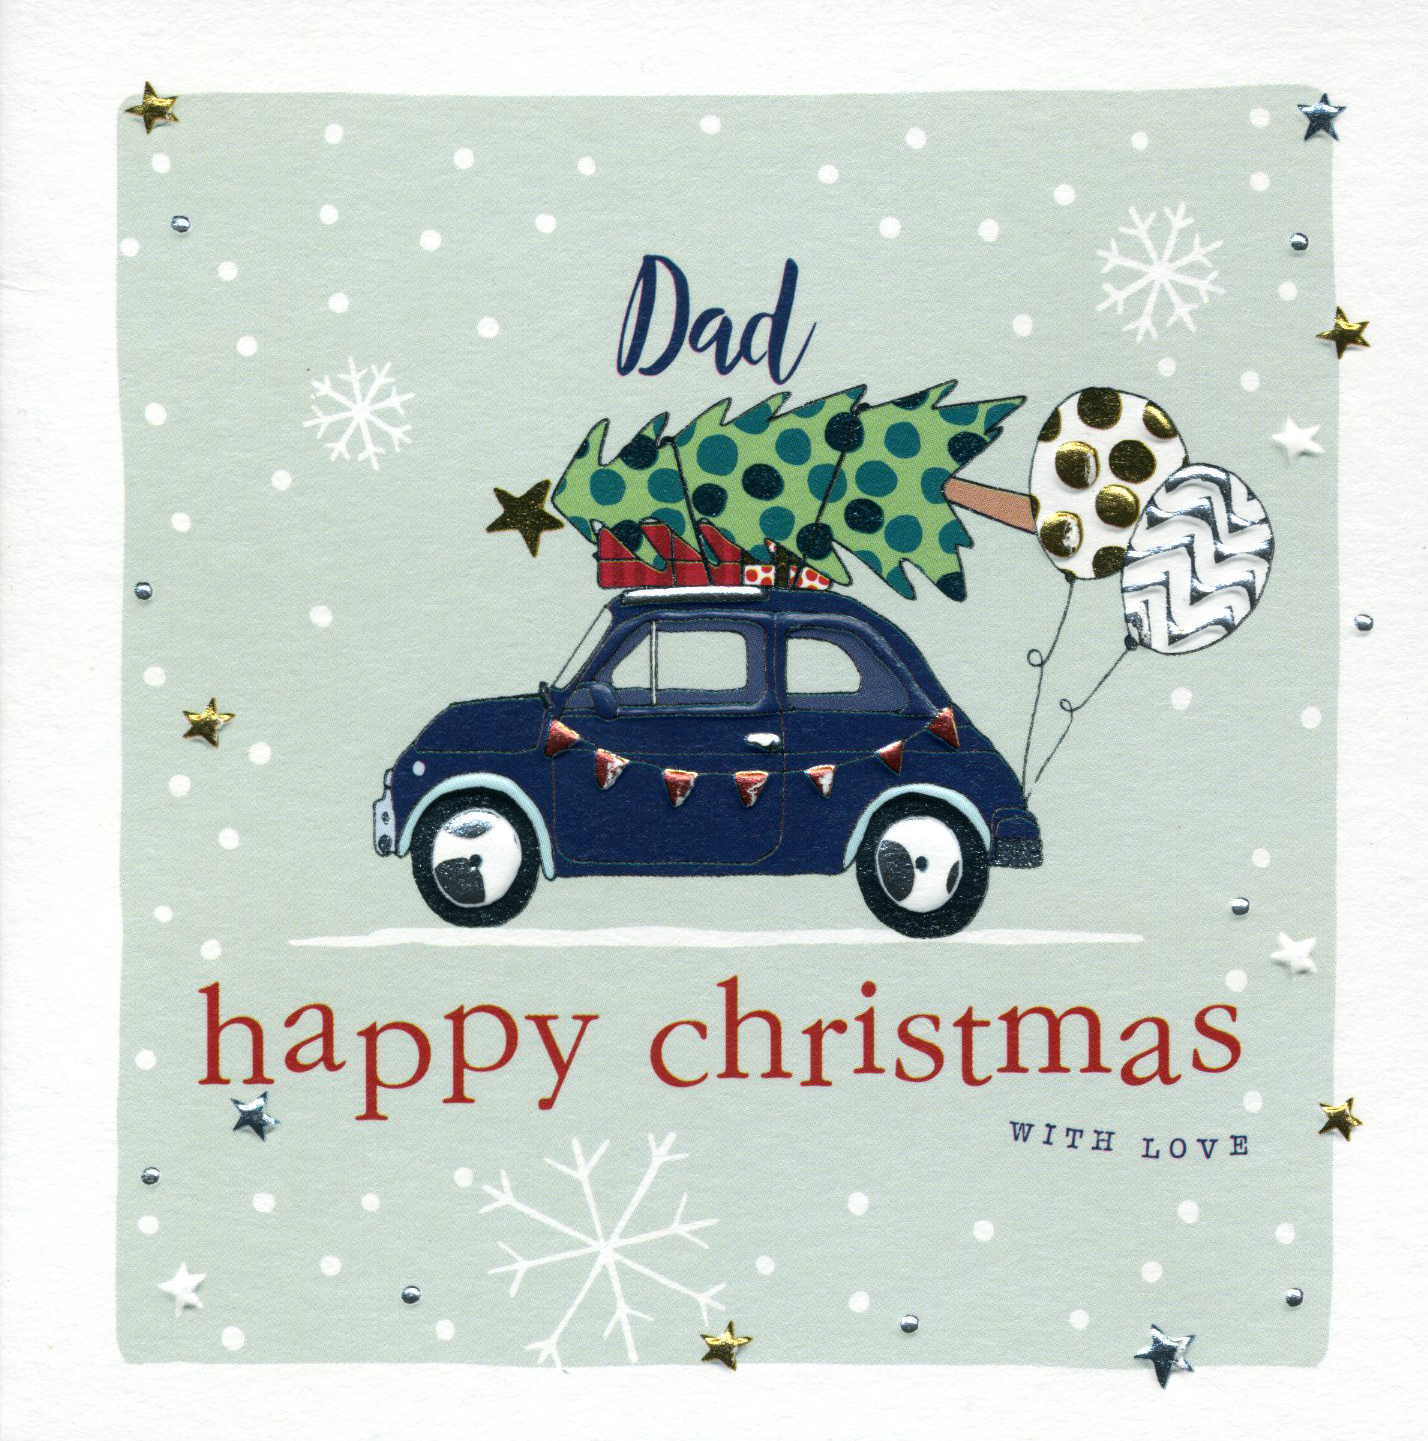 Driving the Tree Home Dad Christmas Card